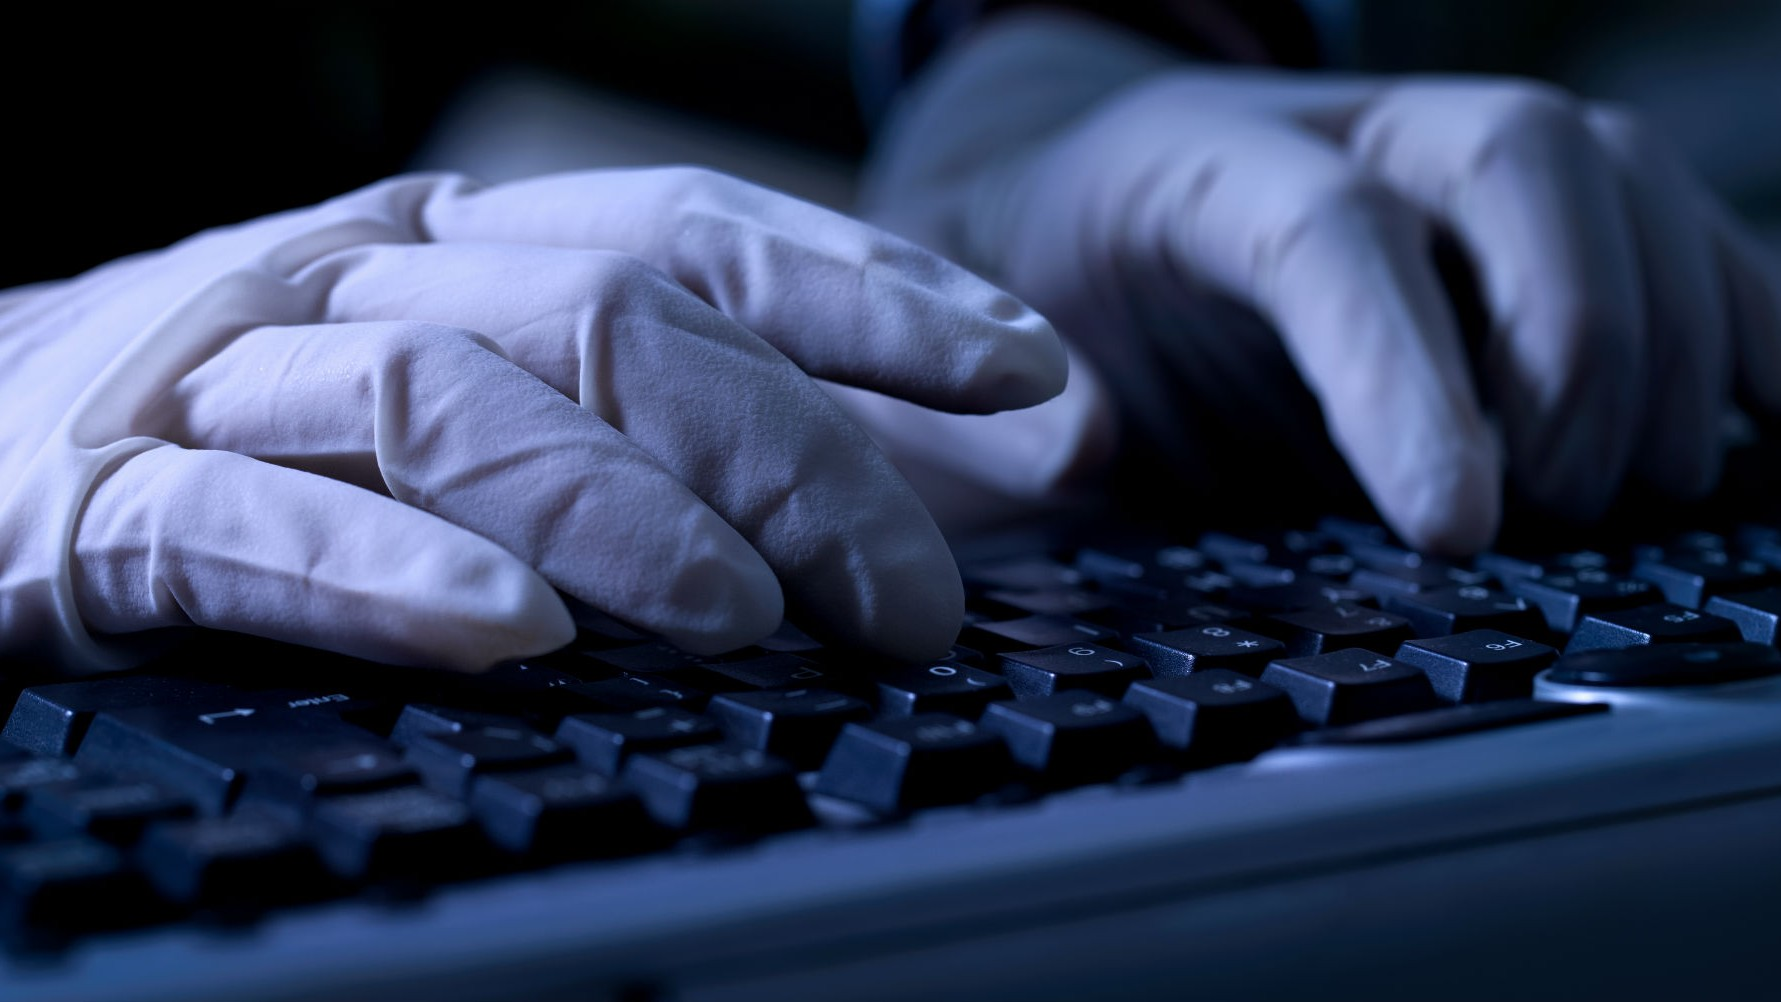 After Cellebrite Breach, Hacking Team Lashes Out Against 'Vigilante Hackers'